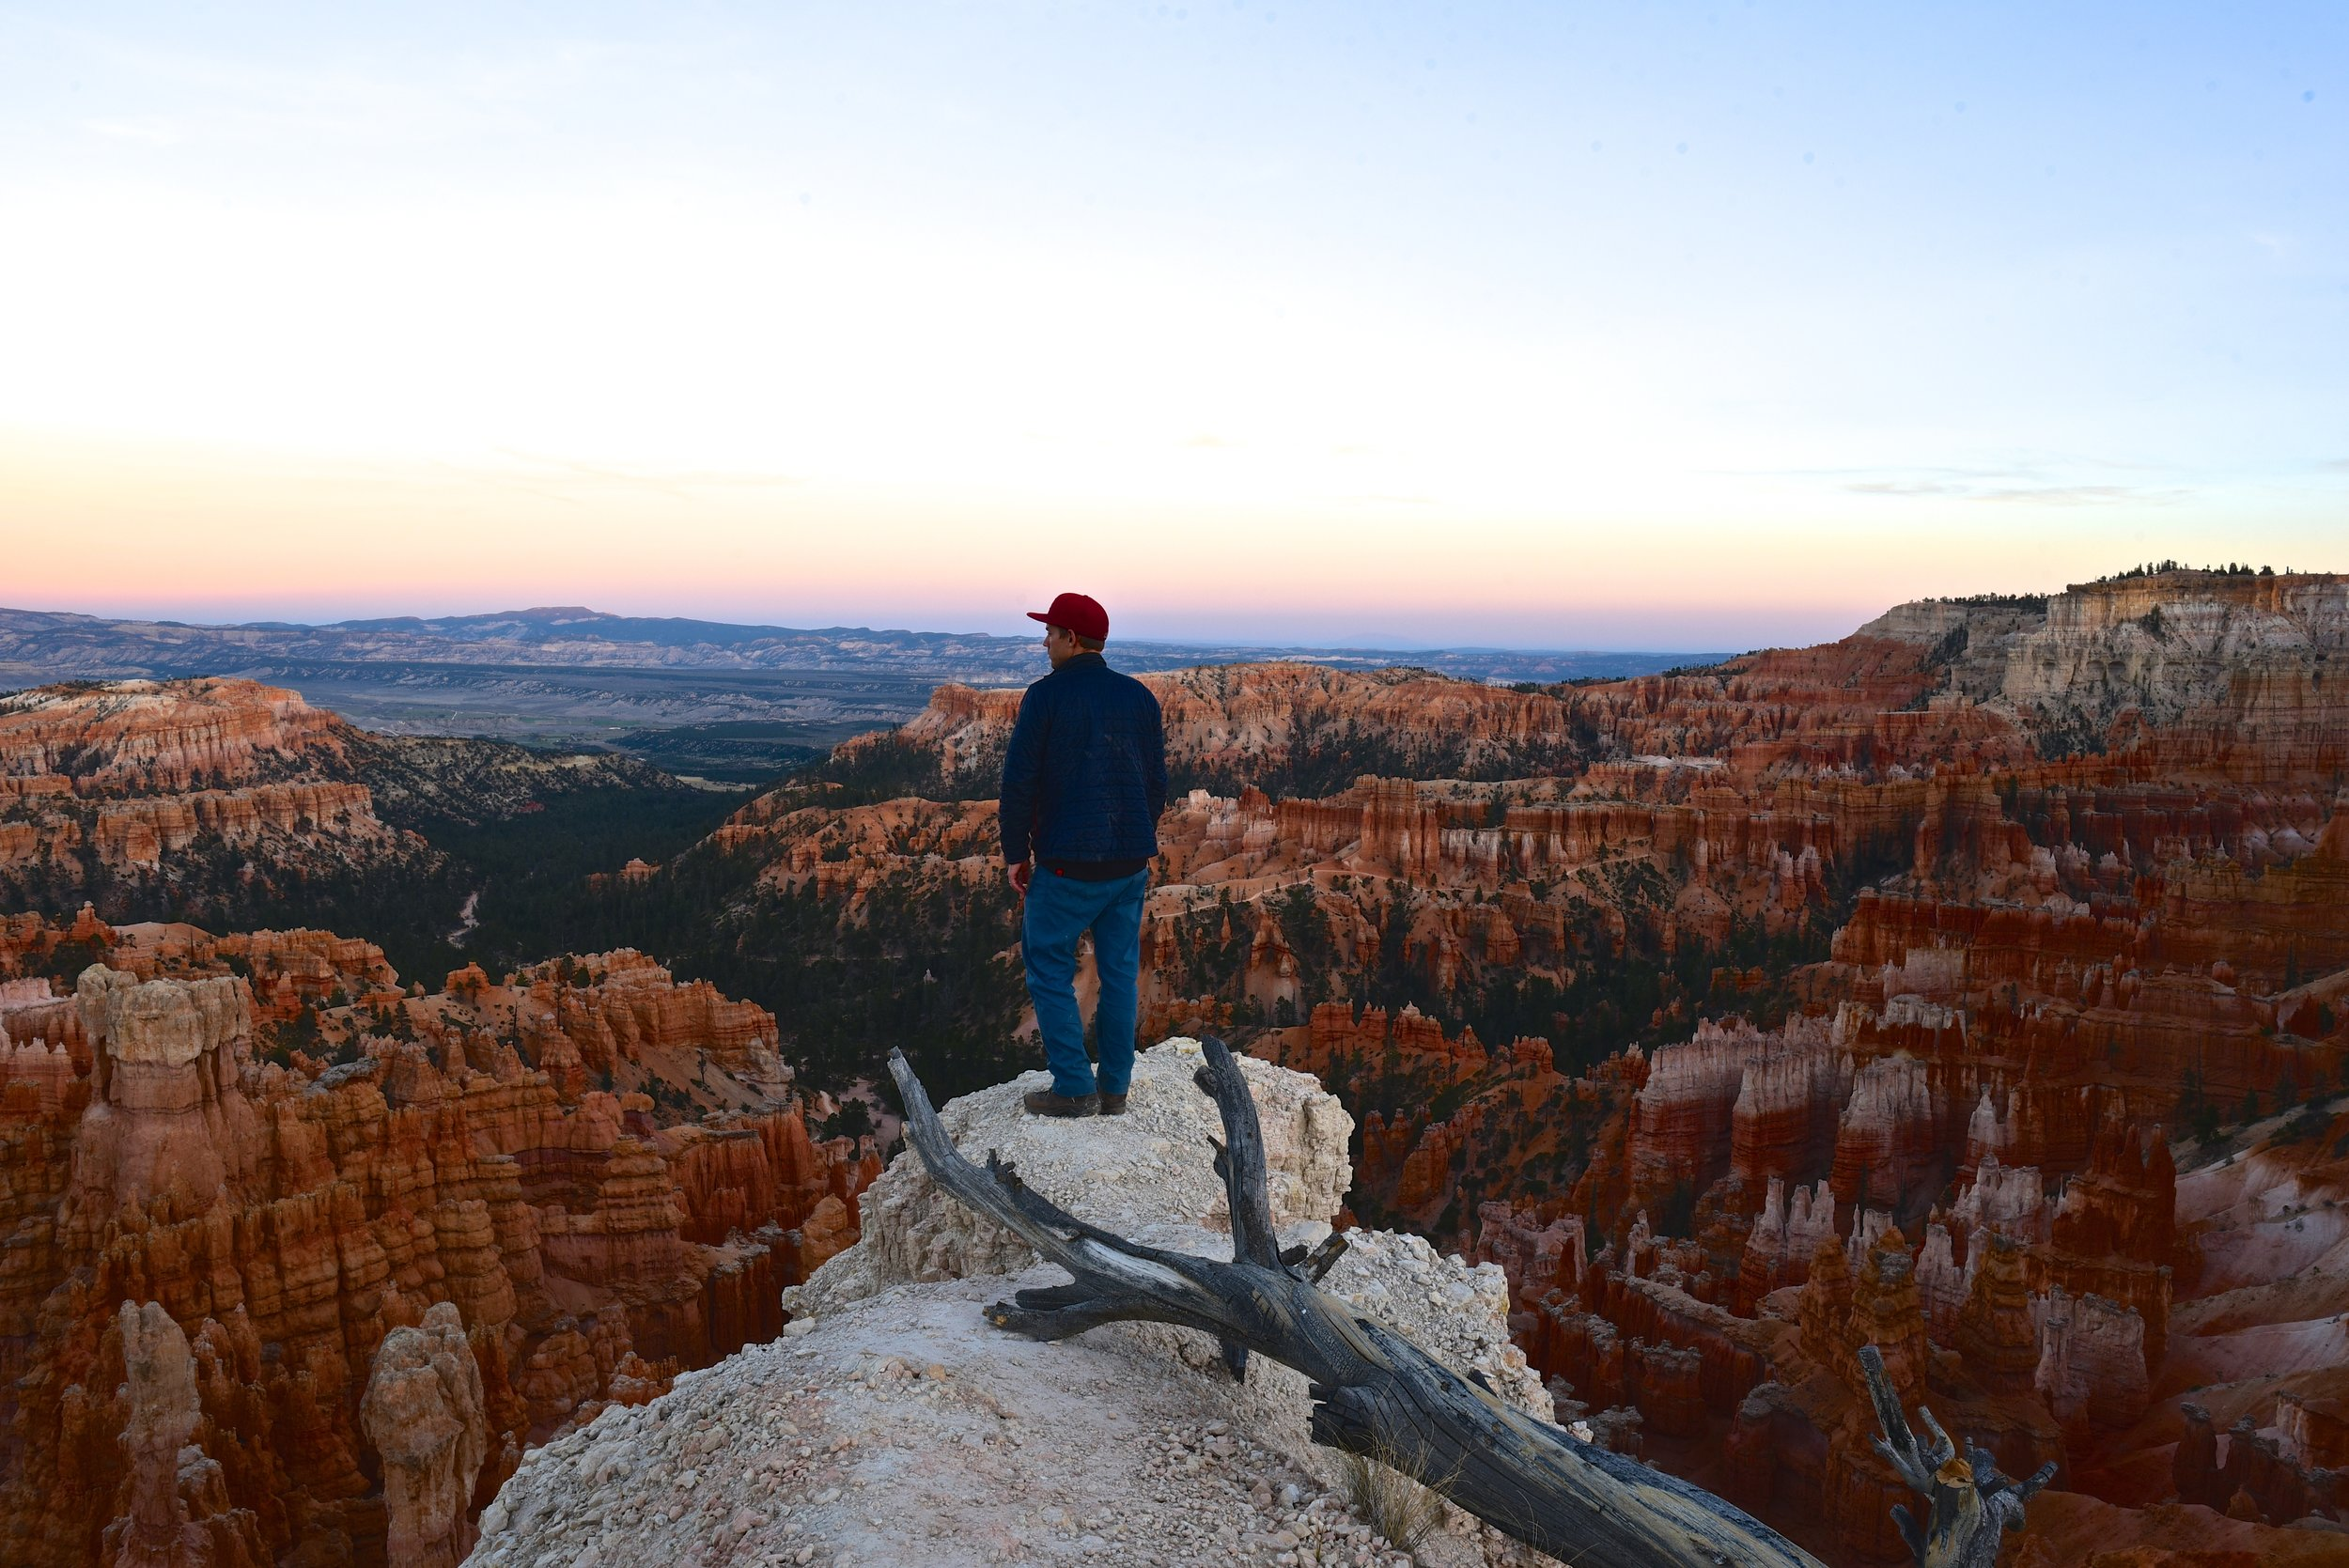 Our first views looking down into Bryce Canyon during sunset